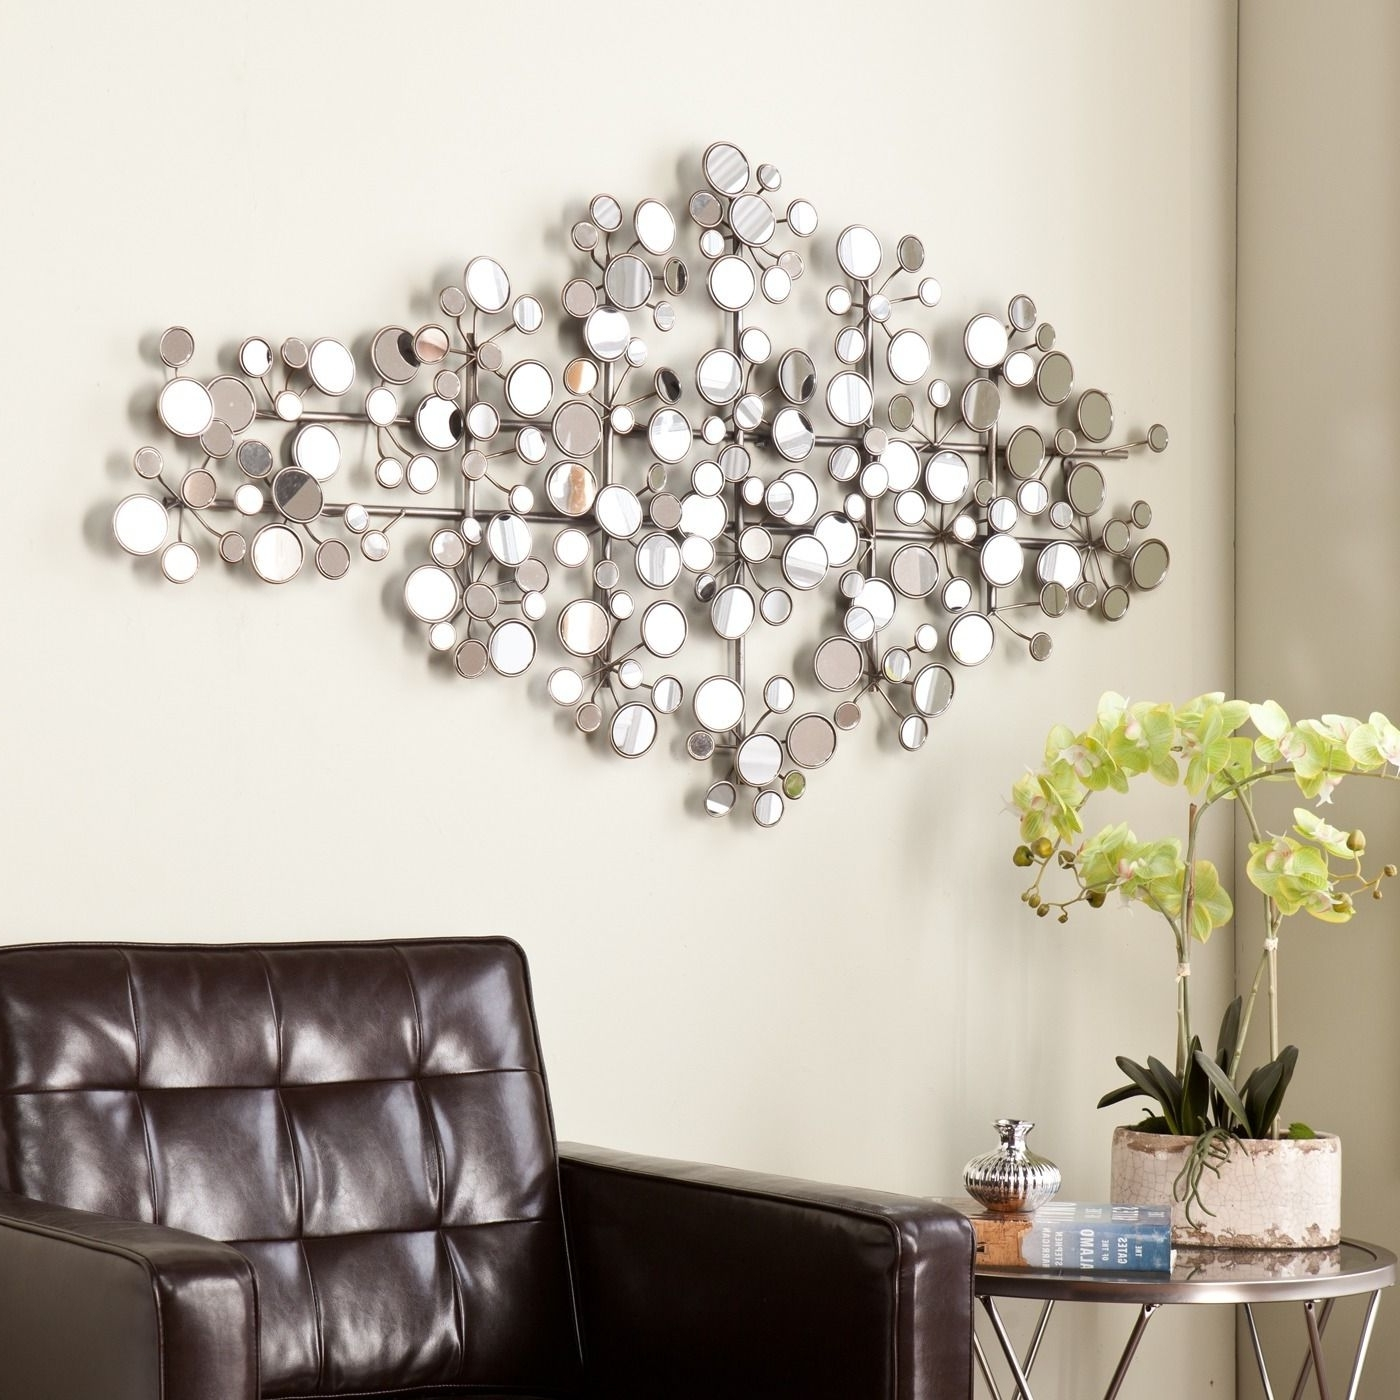 15 collection of mirror sets wall accents for Long wall hanging mirrors